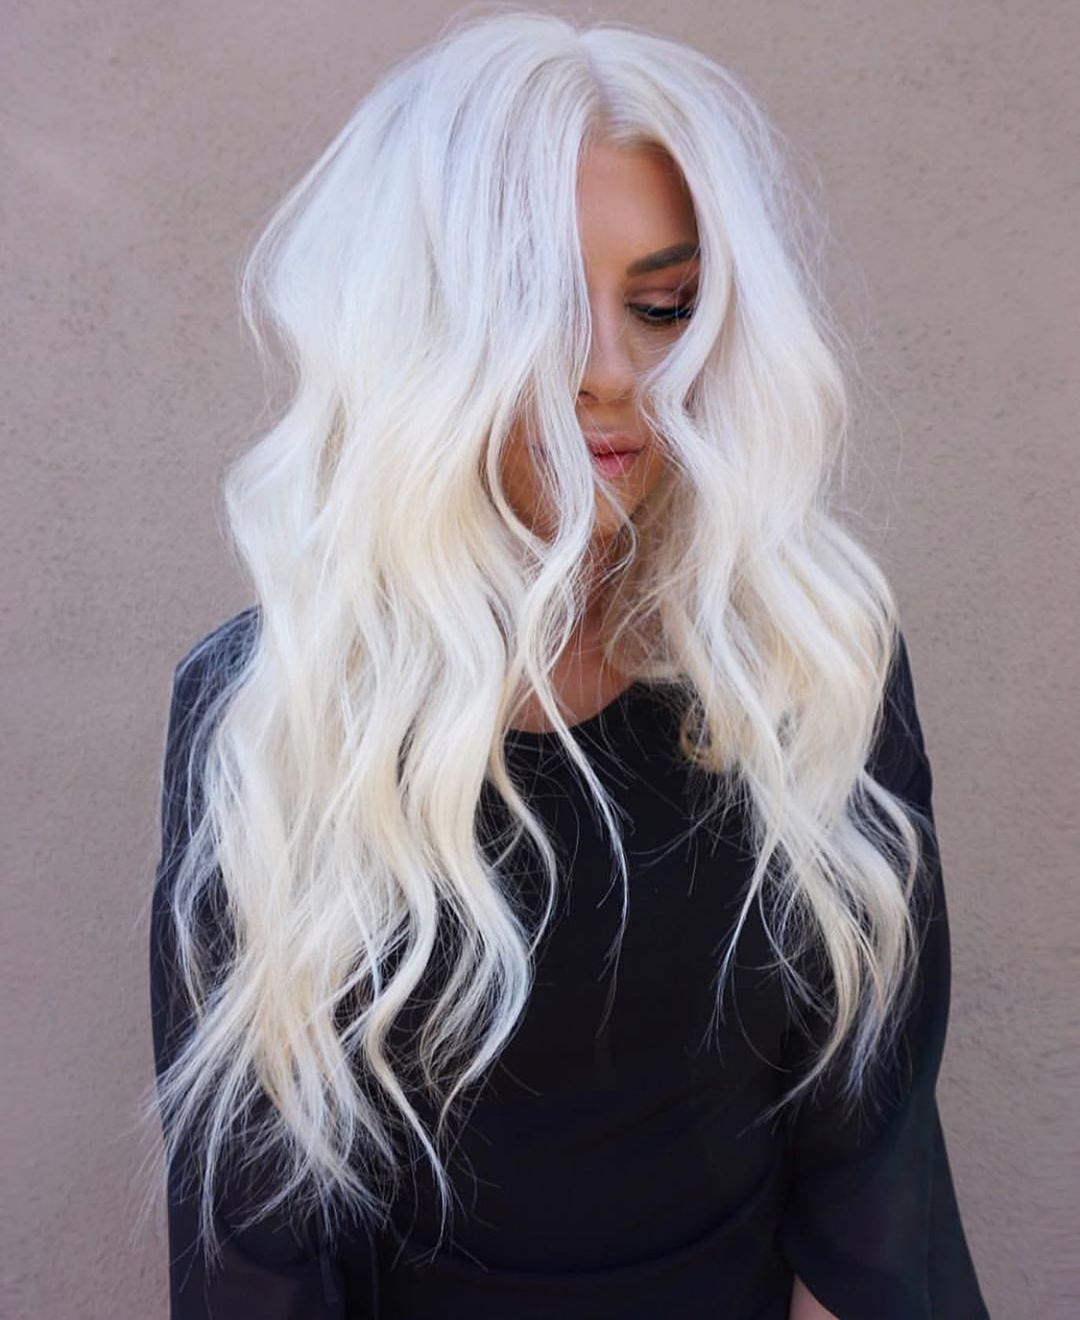 Hair On Instagram Maybe She S Born With It Maybe It S Maggimh Schwarzkopfusa Behindthechair Thebtct Hair Styles Icy Blonde Hair Platinum Blonde Hair